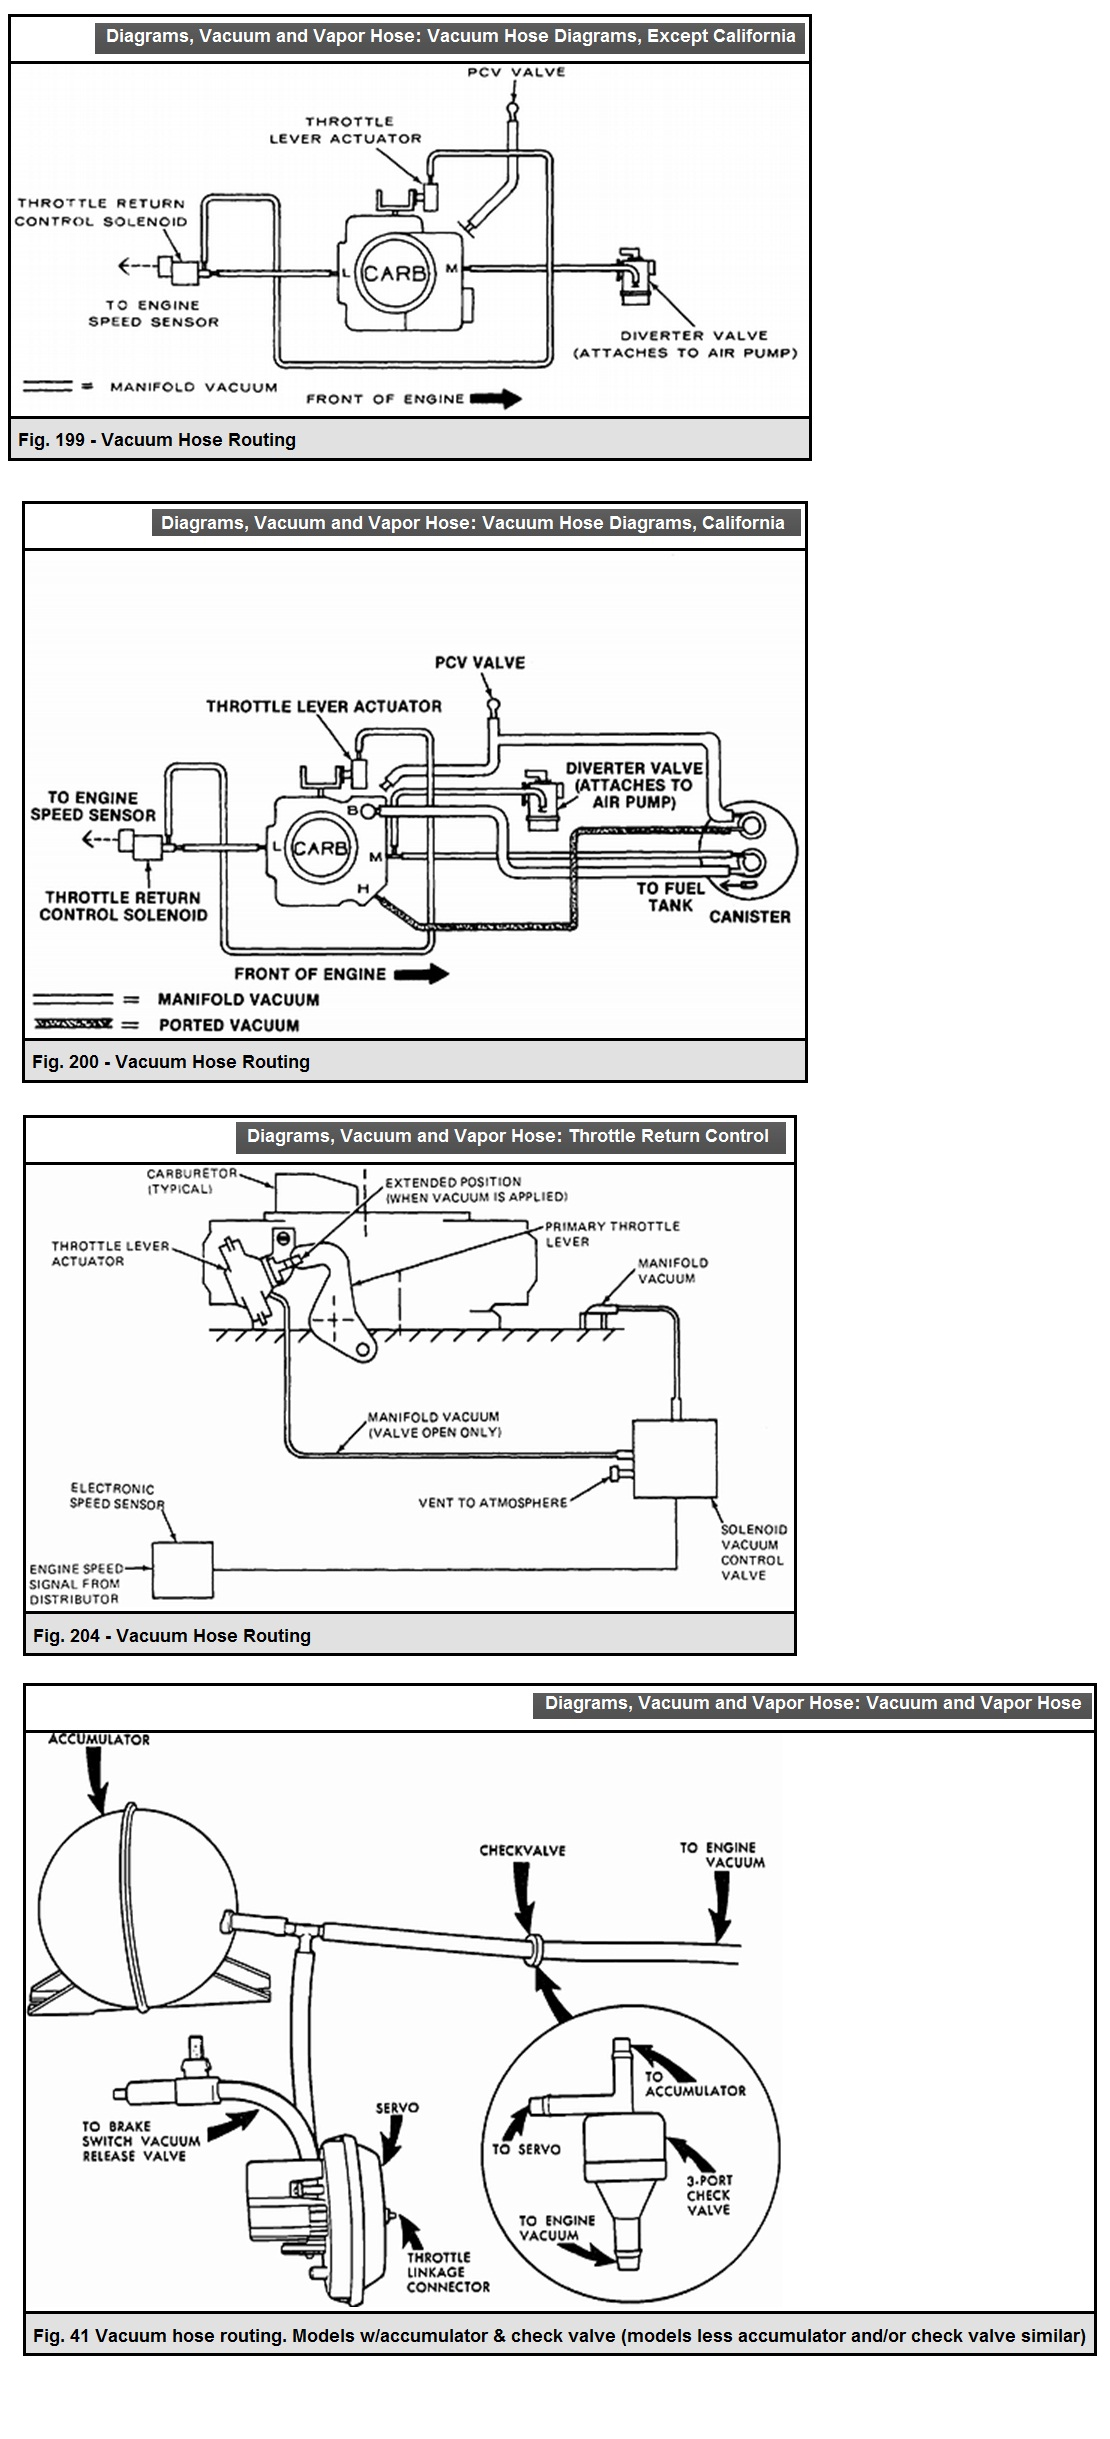 I need a vacuum line diagram for a 1982 gmc truck wac graphic ccuart Images